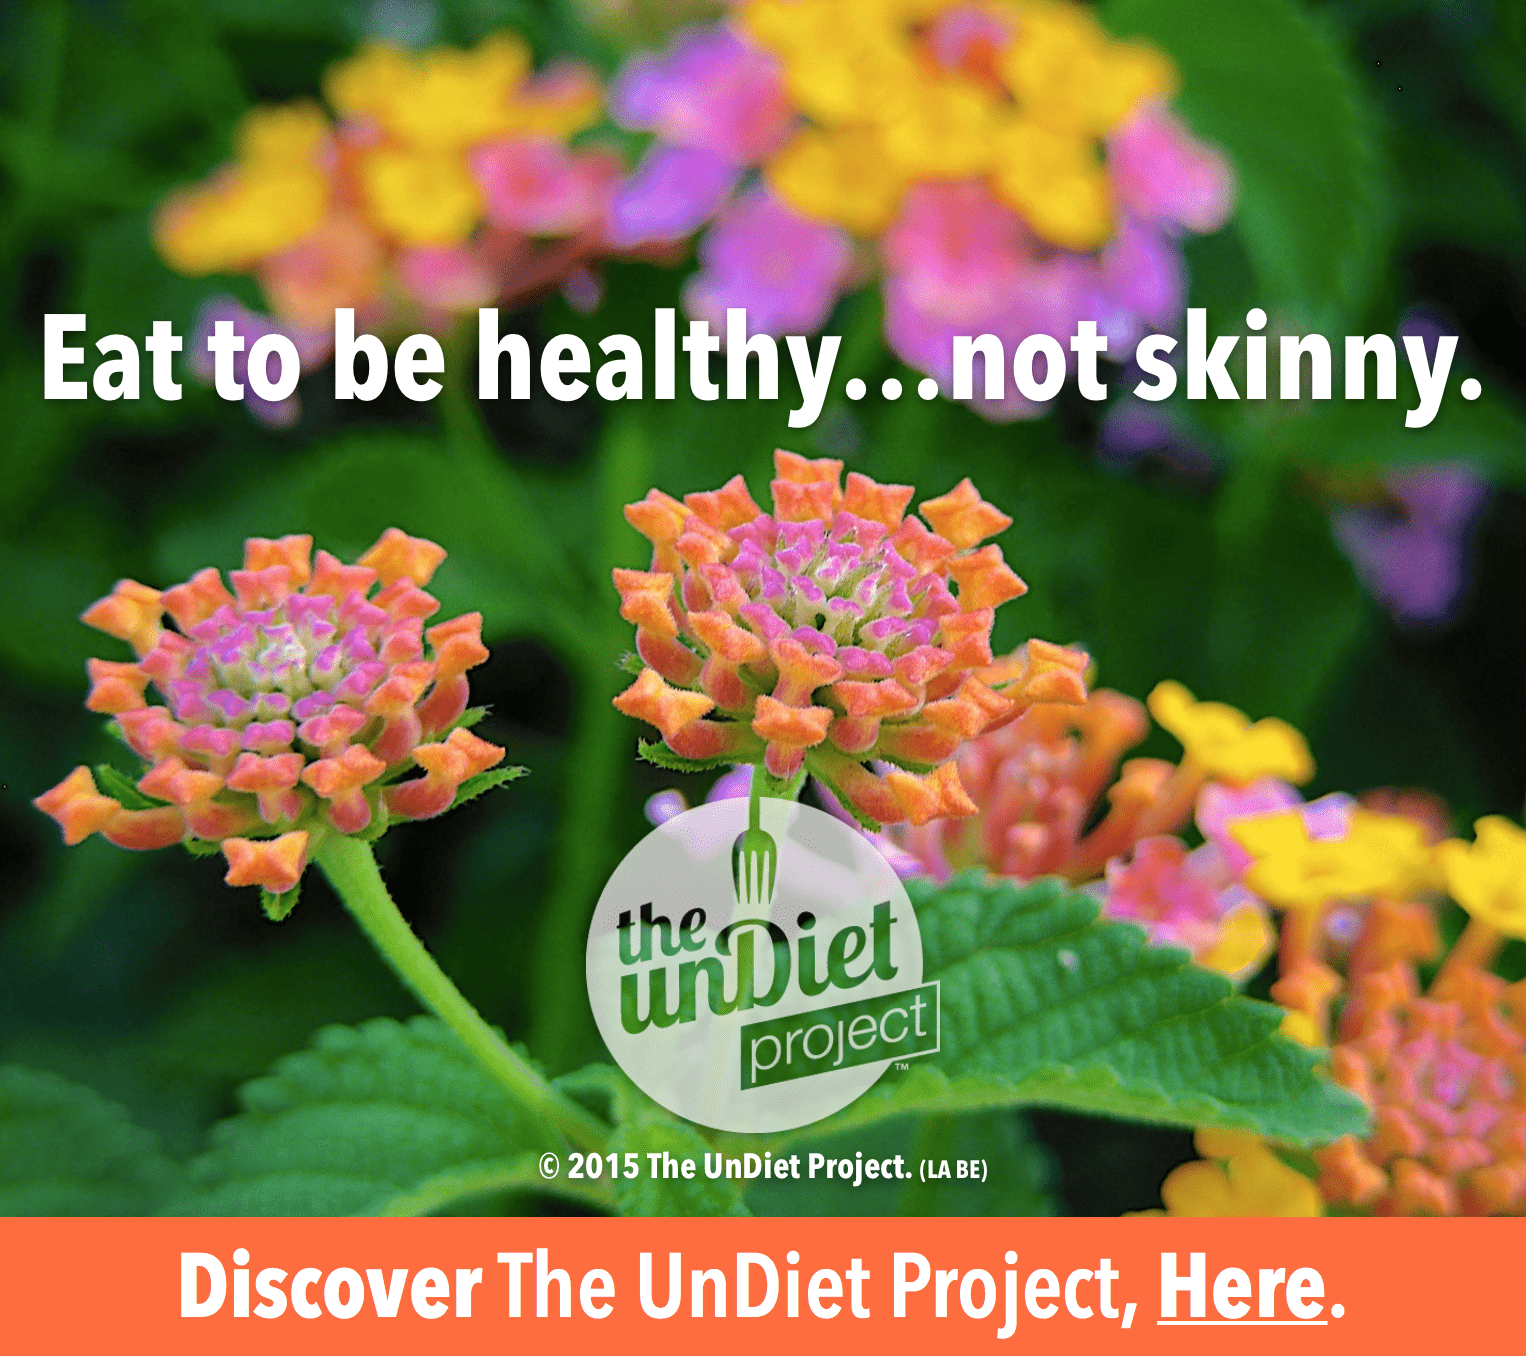 undiet project, weight loss, recipes, daily affirmations